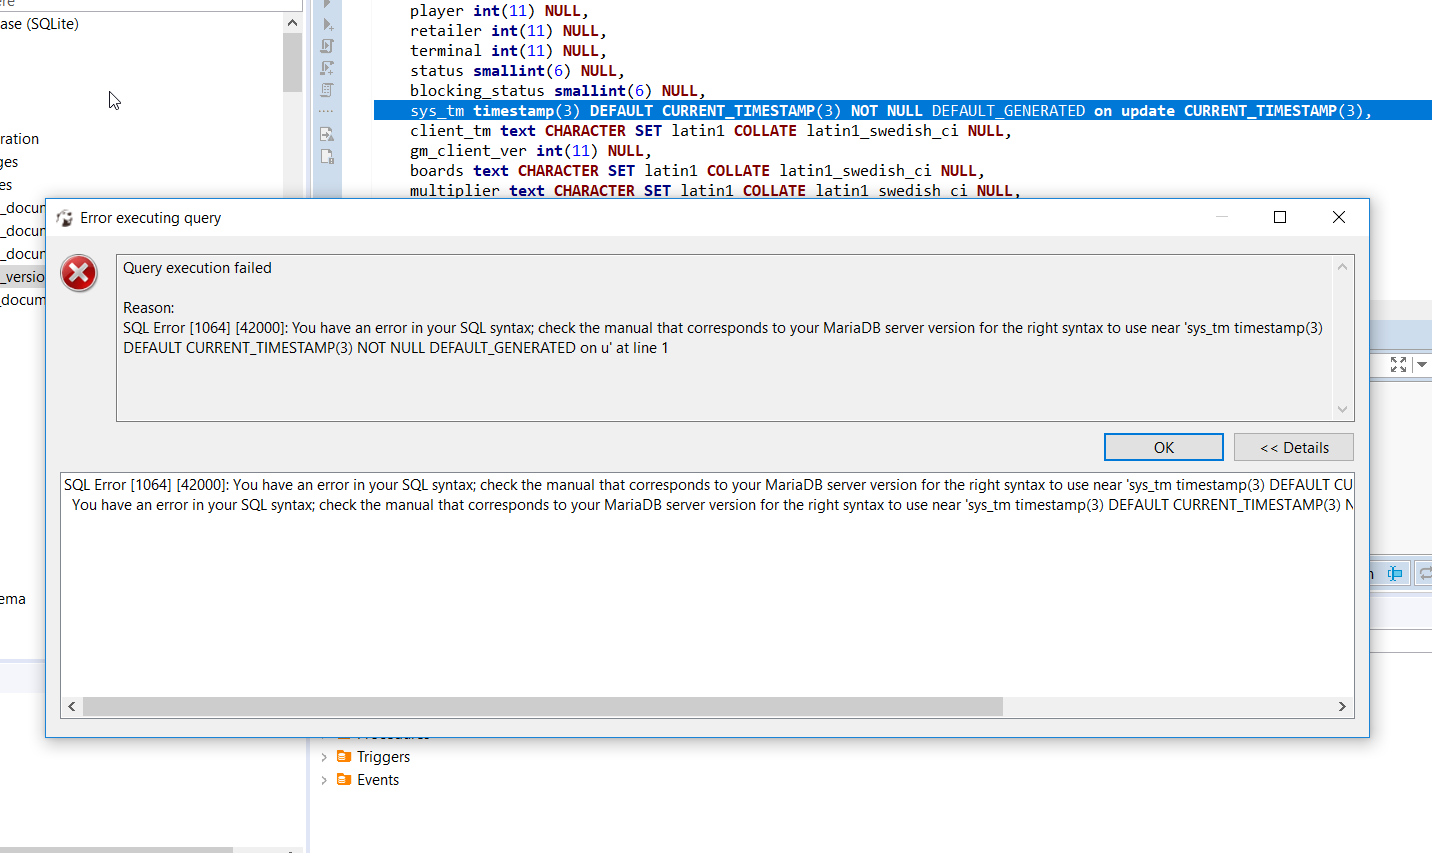 Dbeaver generated sql reports errors when trying to execute it